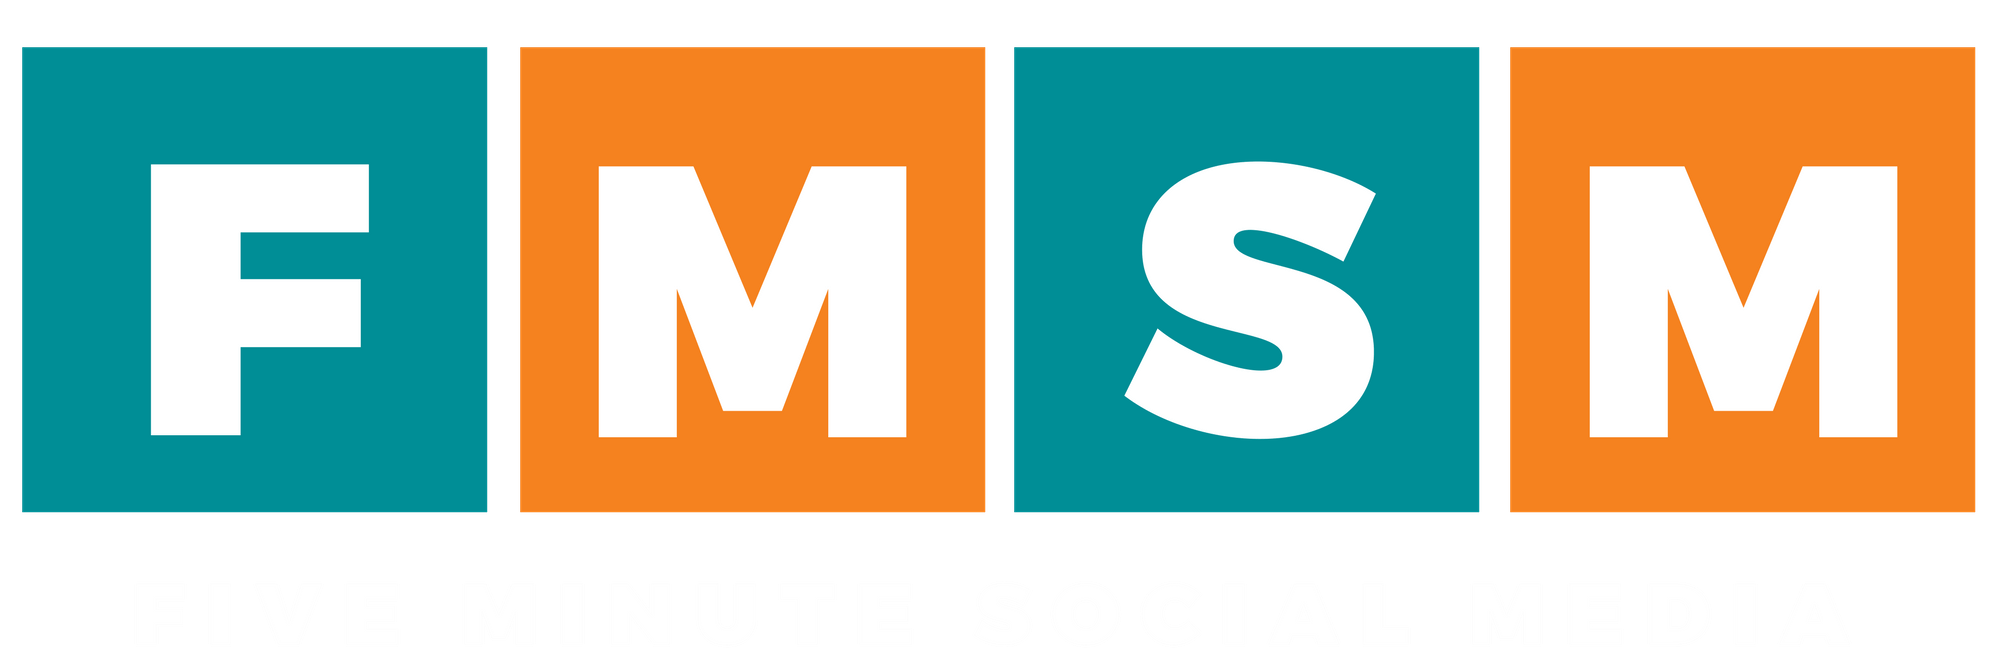 Five Minute Social Media Logo - Horizontal, White